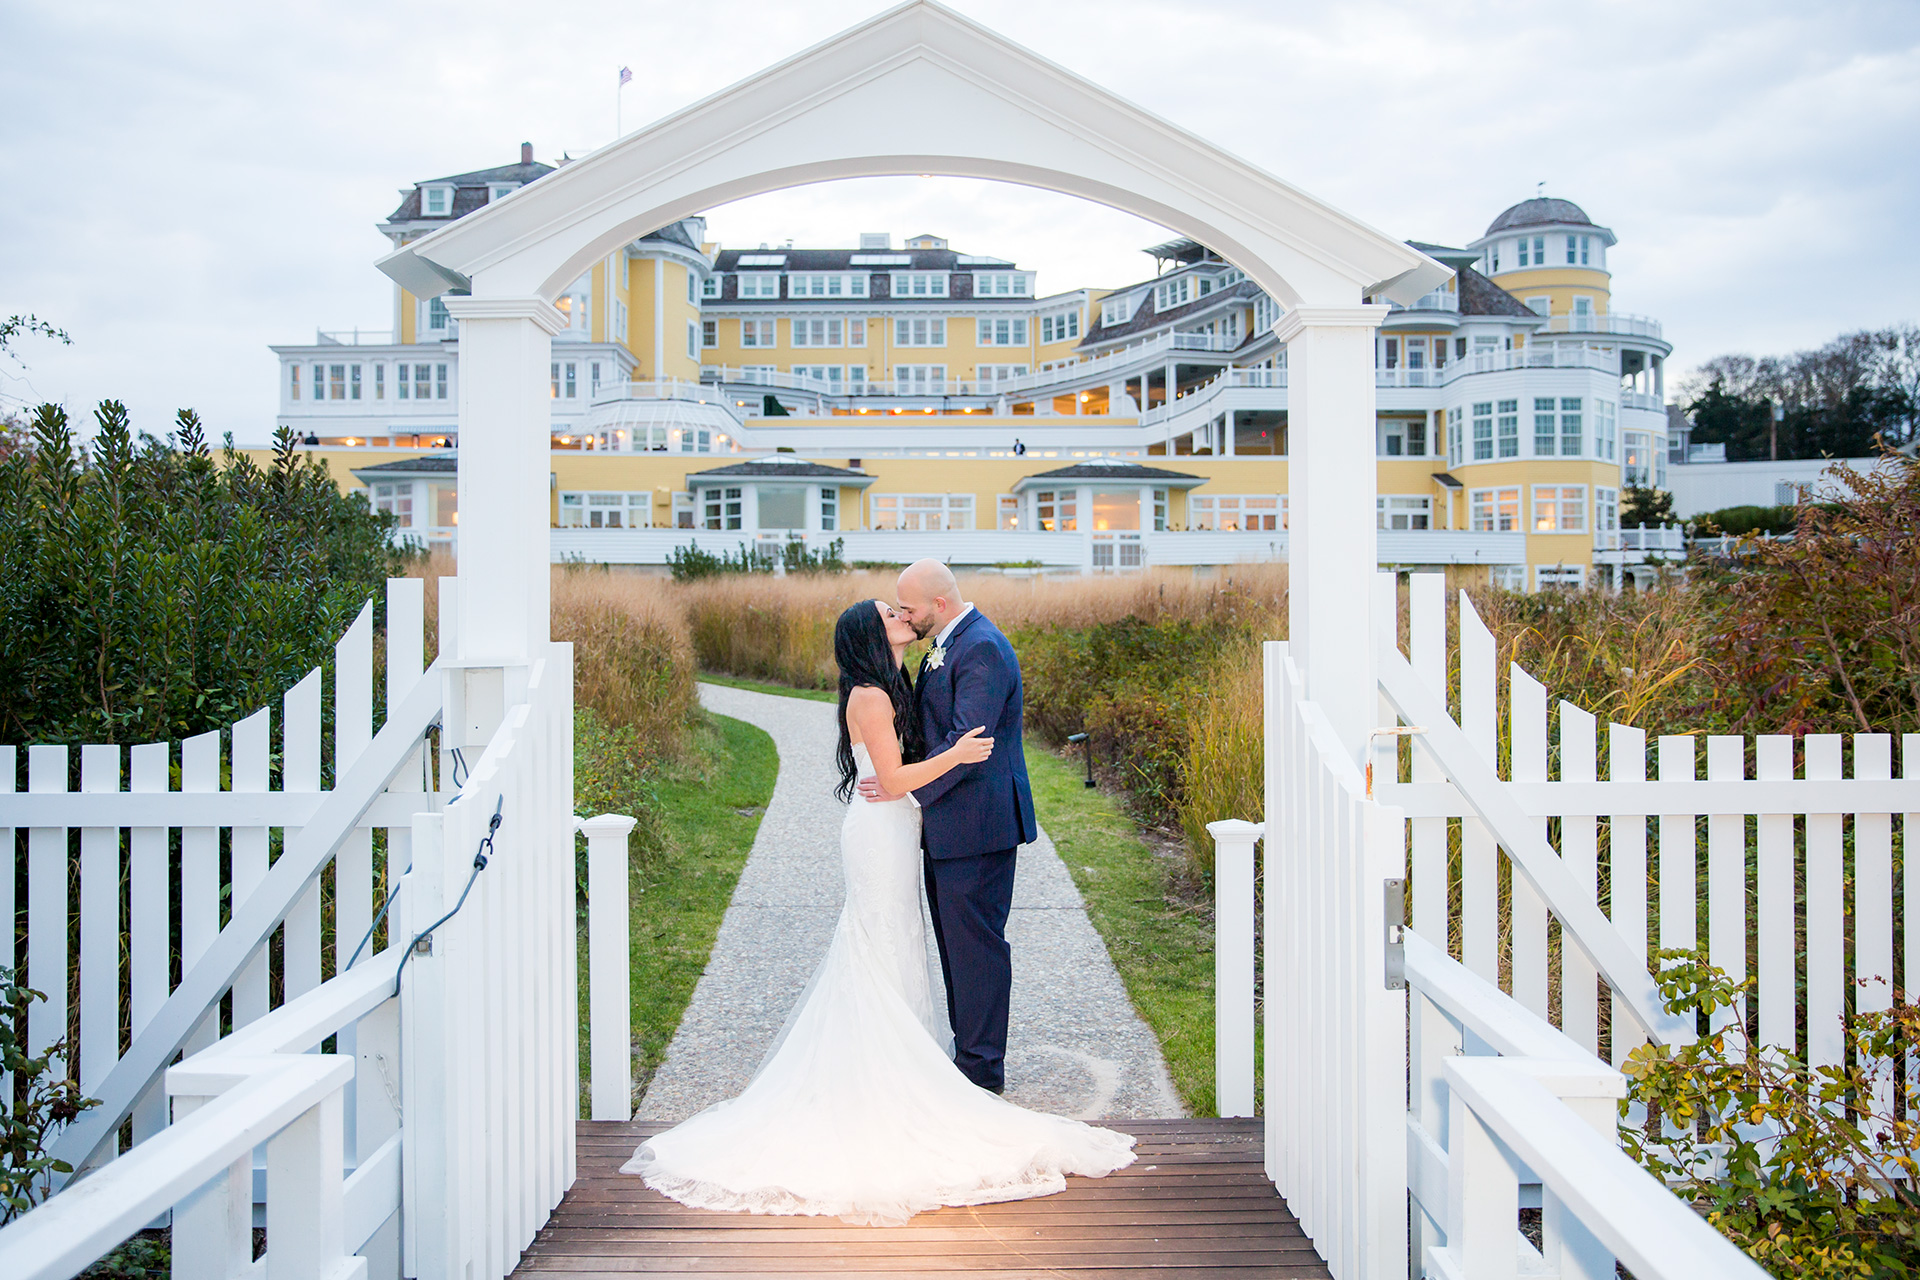 Collins 43 Jpg From James And Dawn S Wedding At The Ocean House In Watch